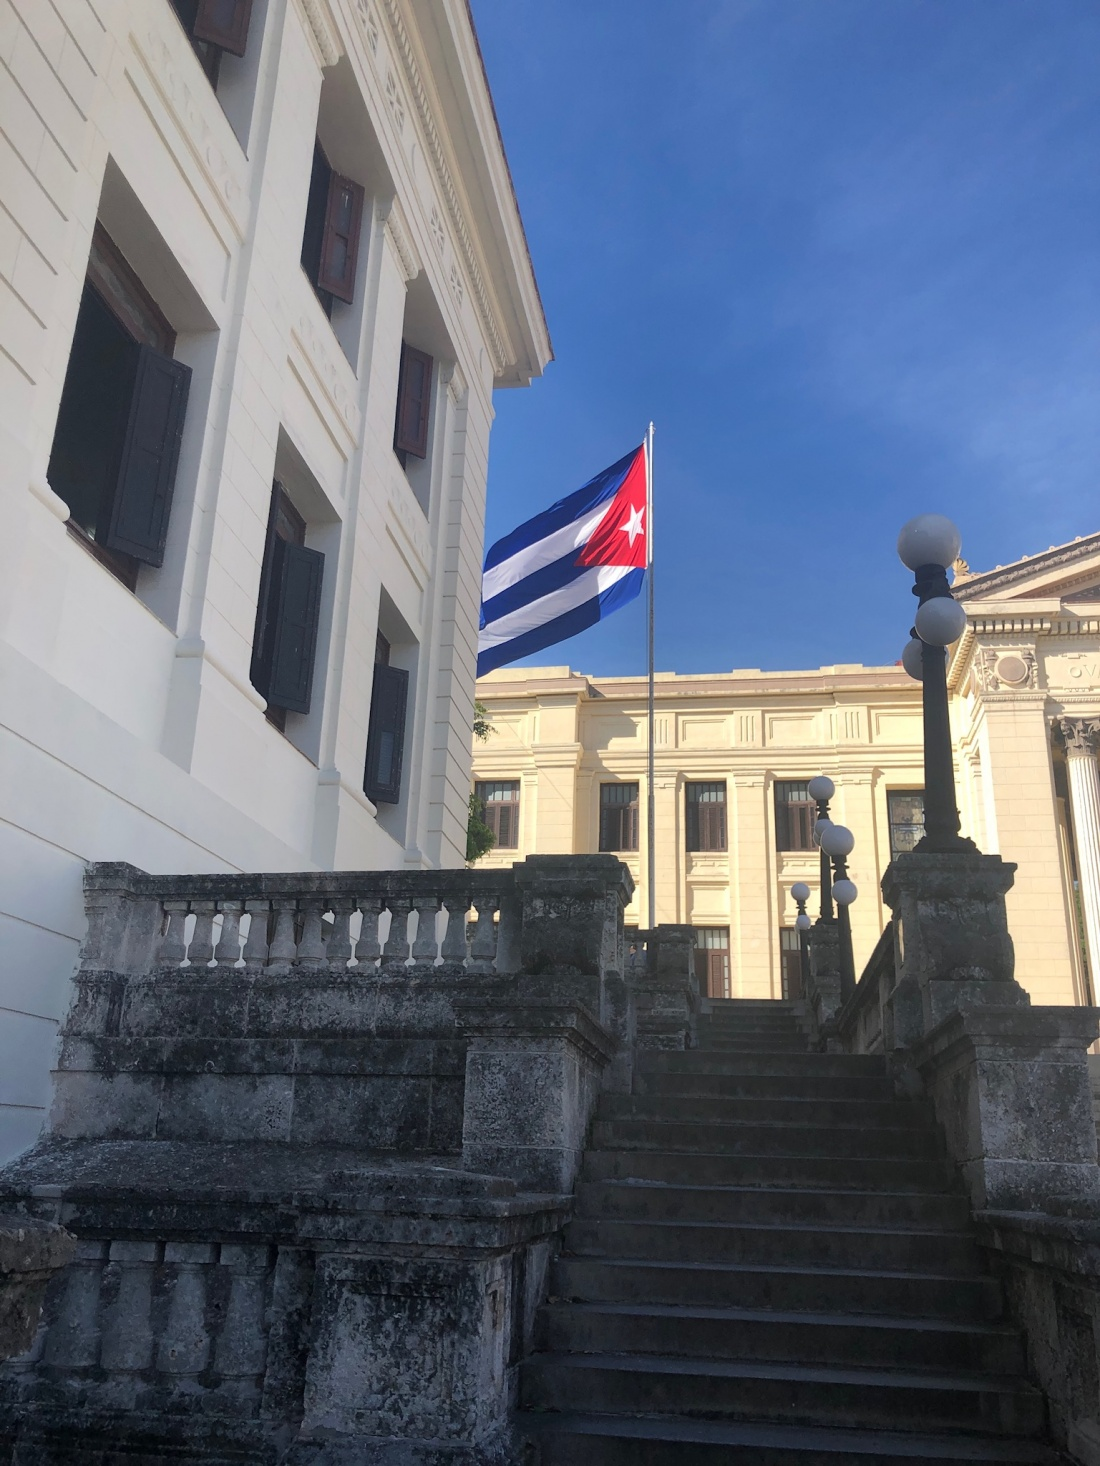 Steps of the University of Havana - Photo Credit to Adriana Rodriguez